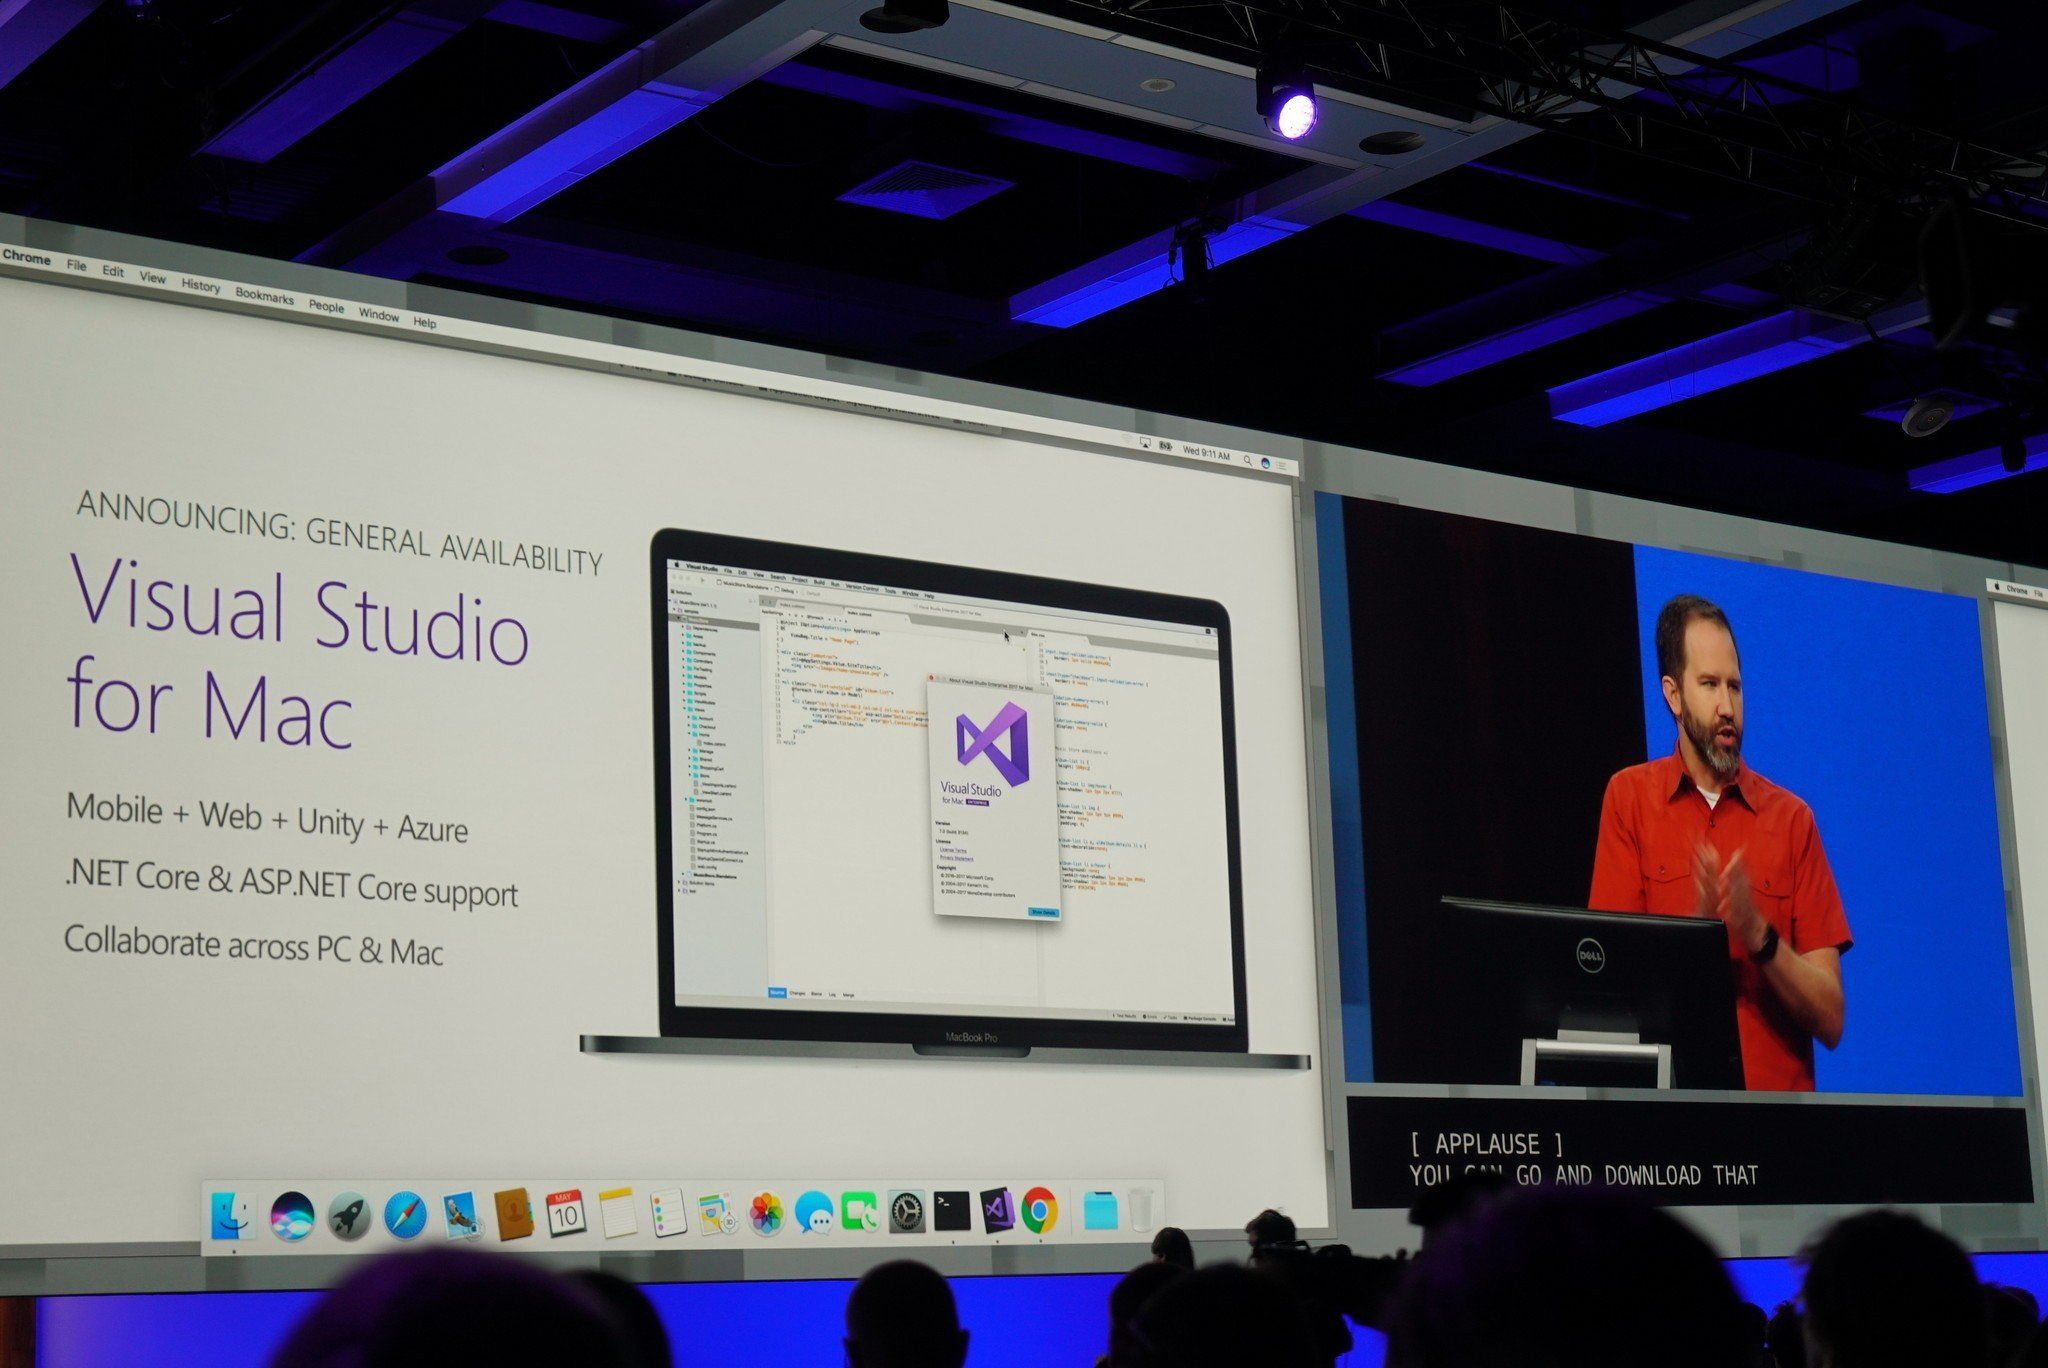 Visual Studio 2017 for Mac is now generally available